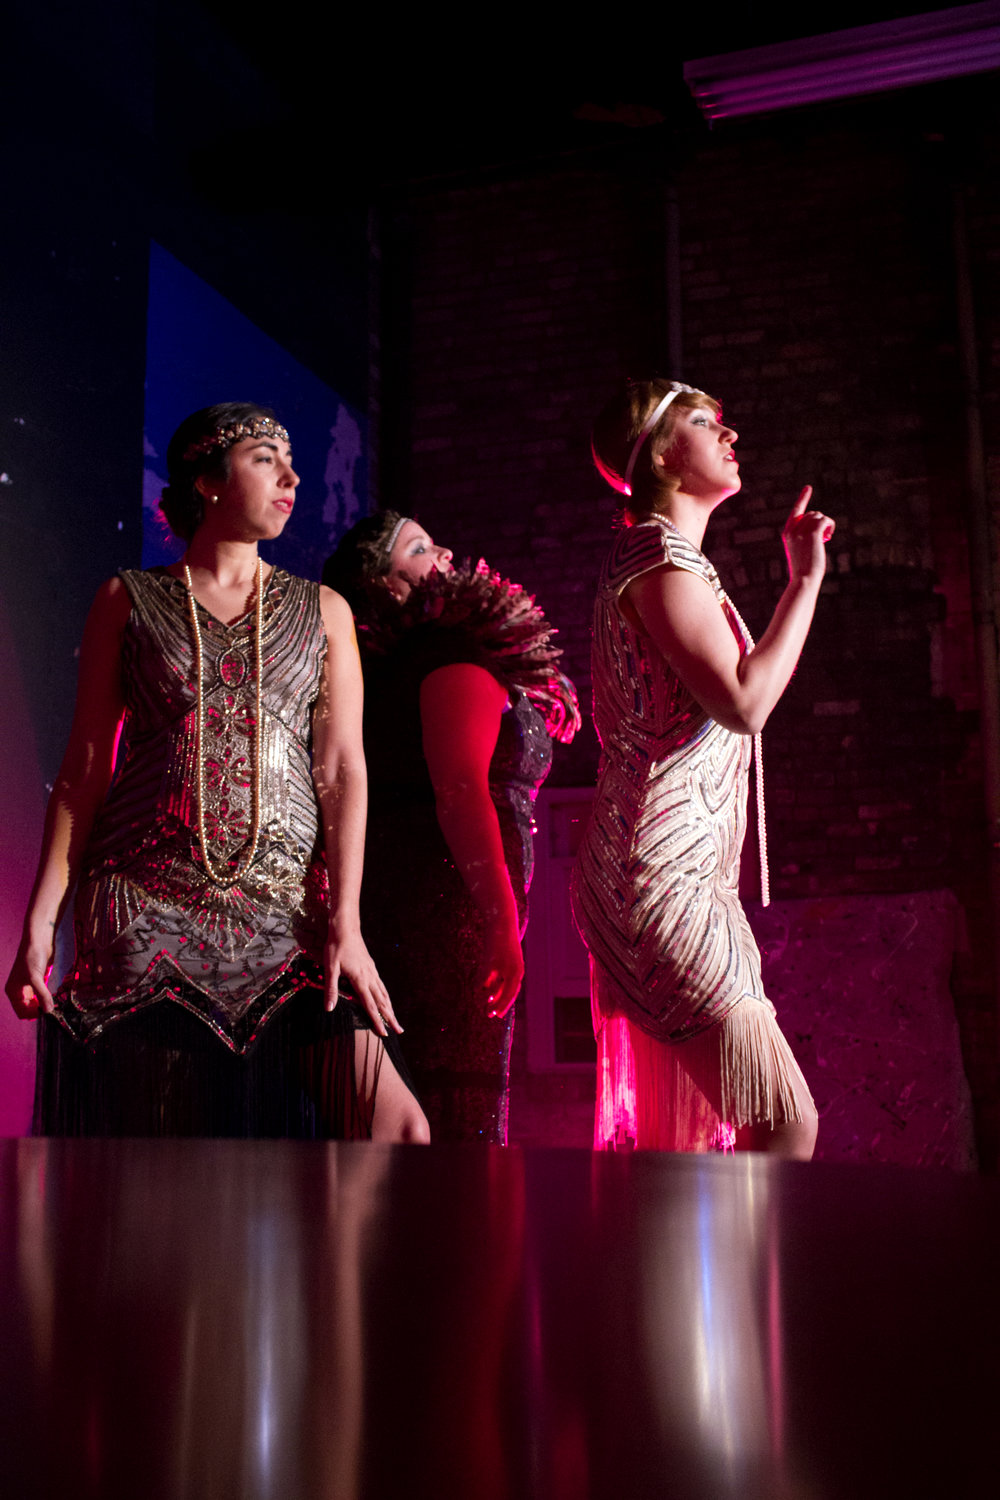 Rebecca Richardson as Lee Miller in Tabula Rasa, with Eugenia Forteza and Allison Gish. Photo credit: Joyce Yin